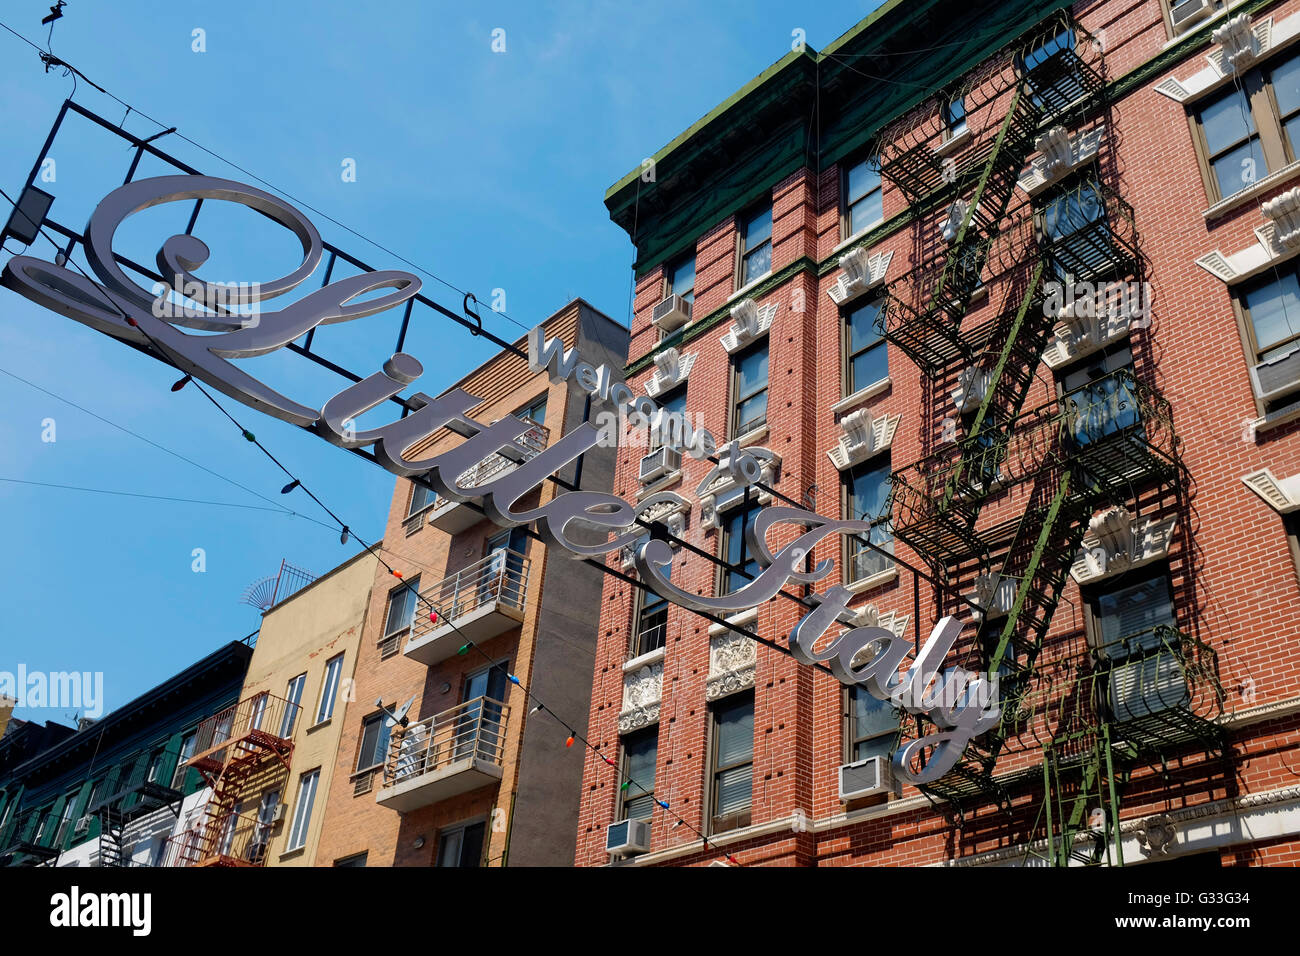 Little Italy in New York City. - Stock Image